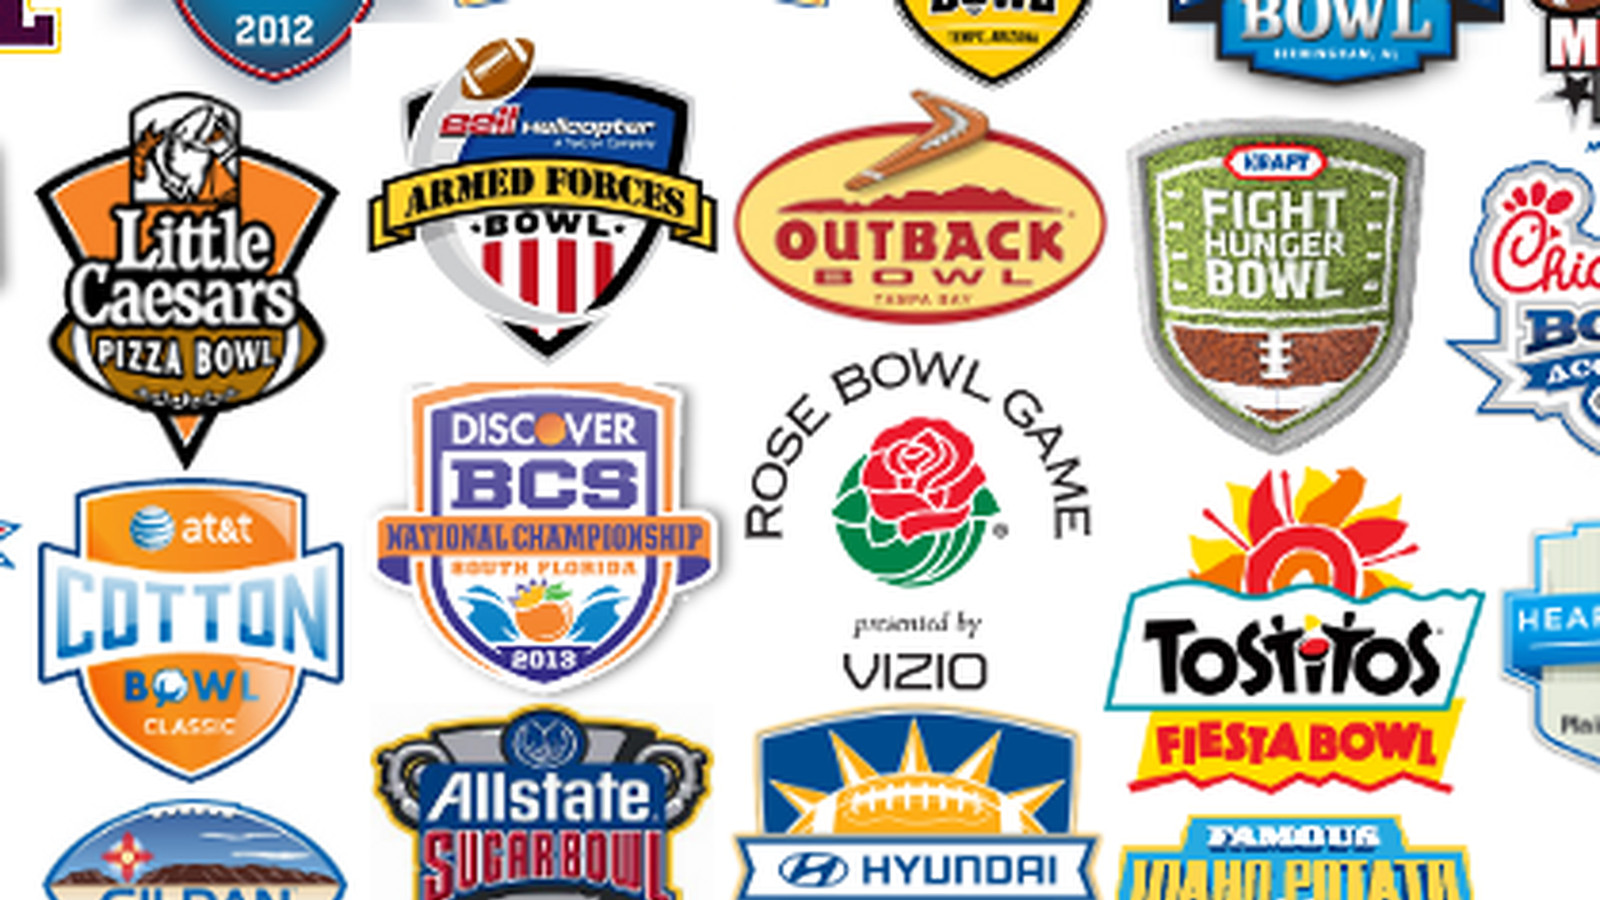 college bowl projections 2012